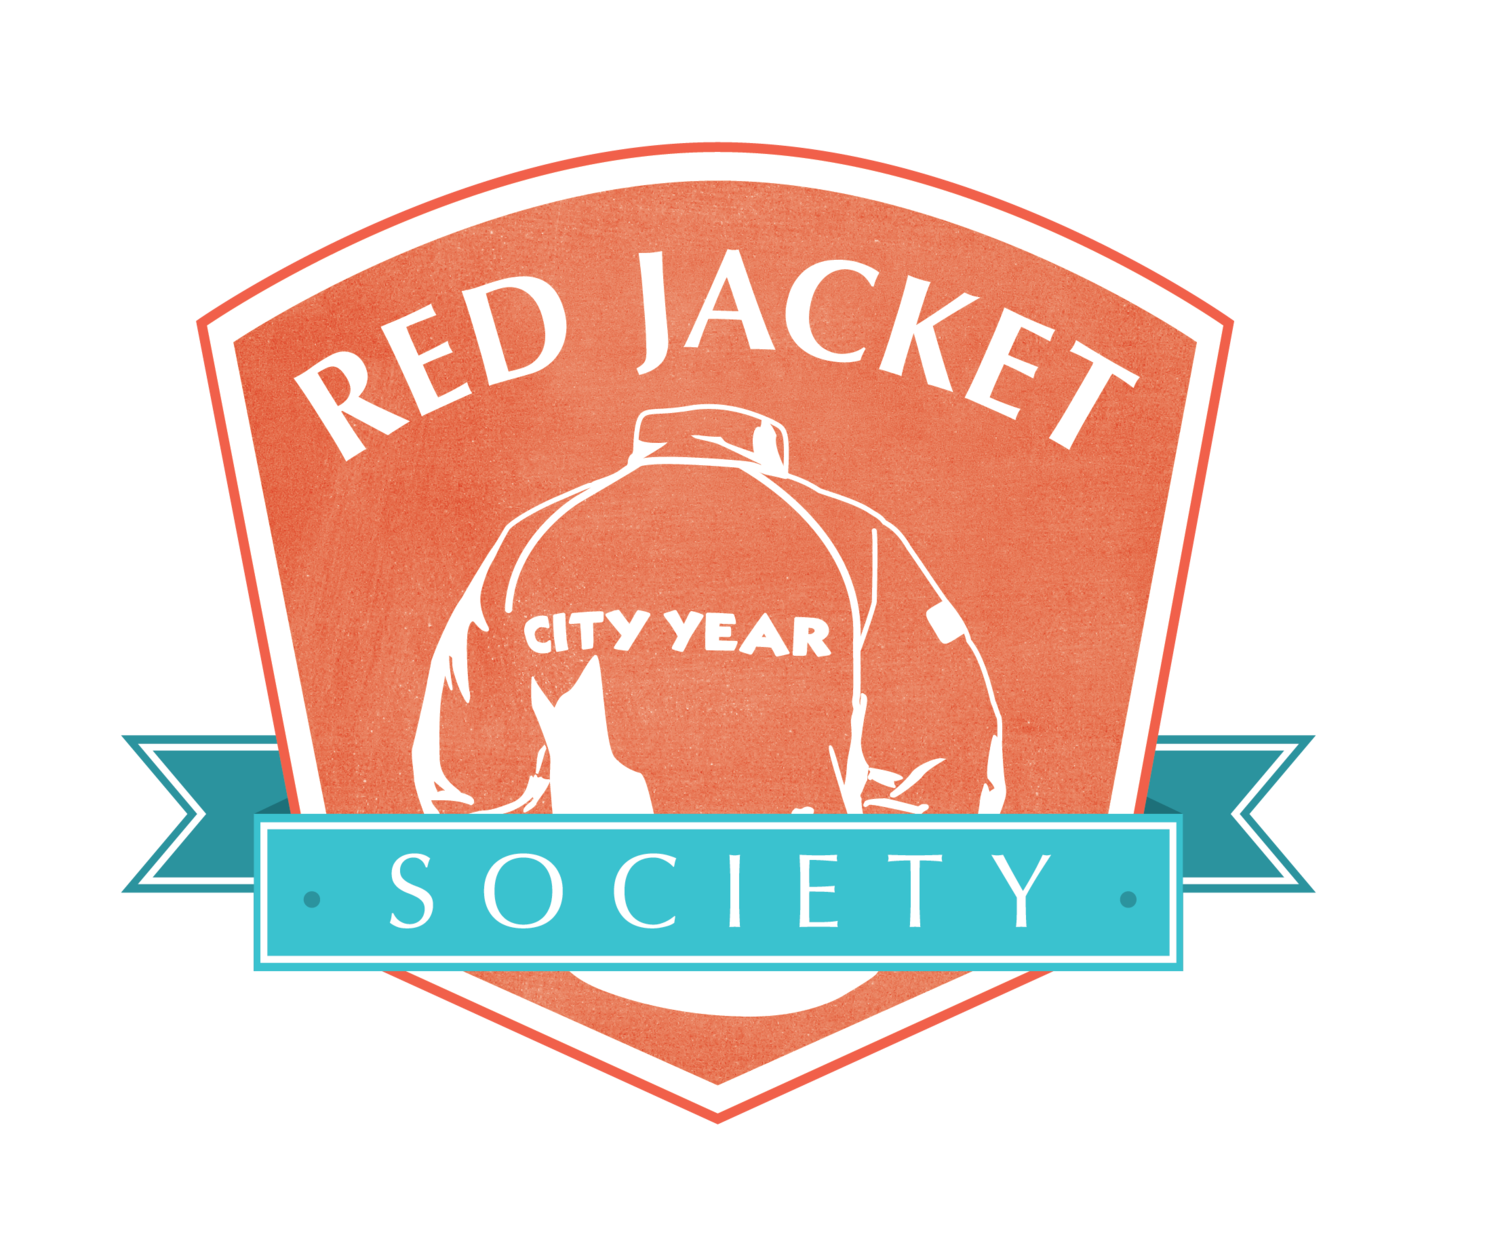 Red Jacket Society